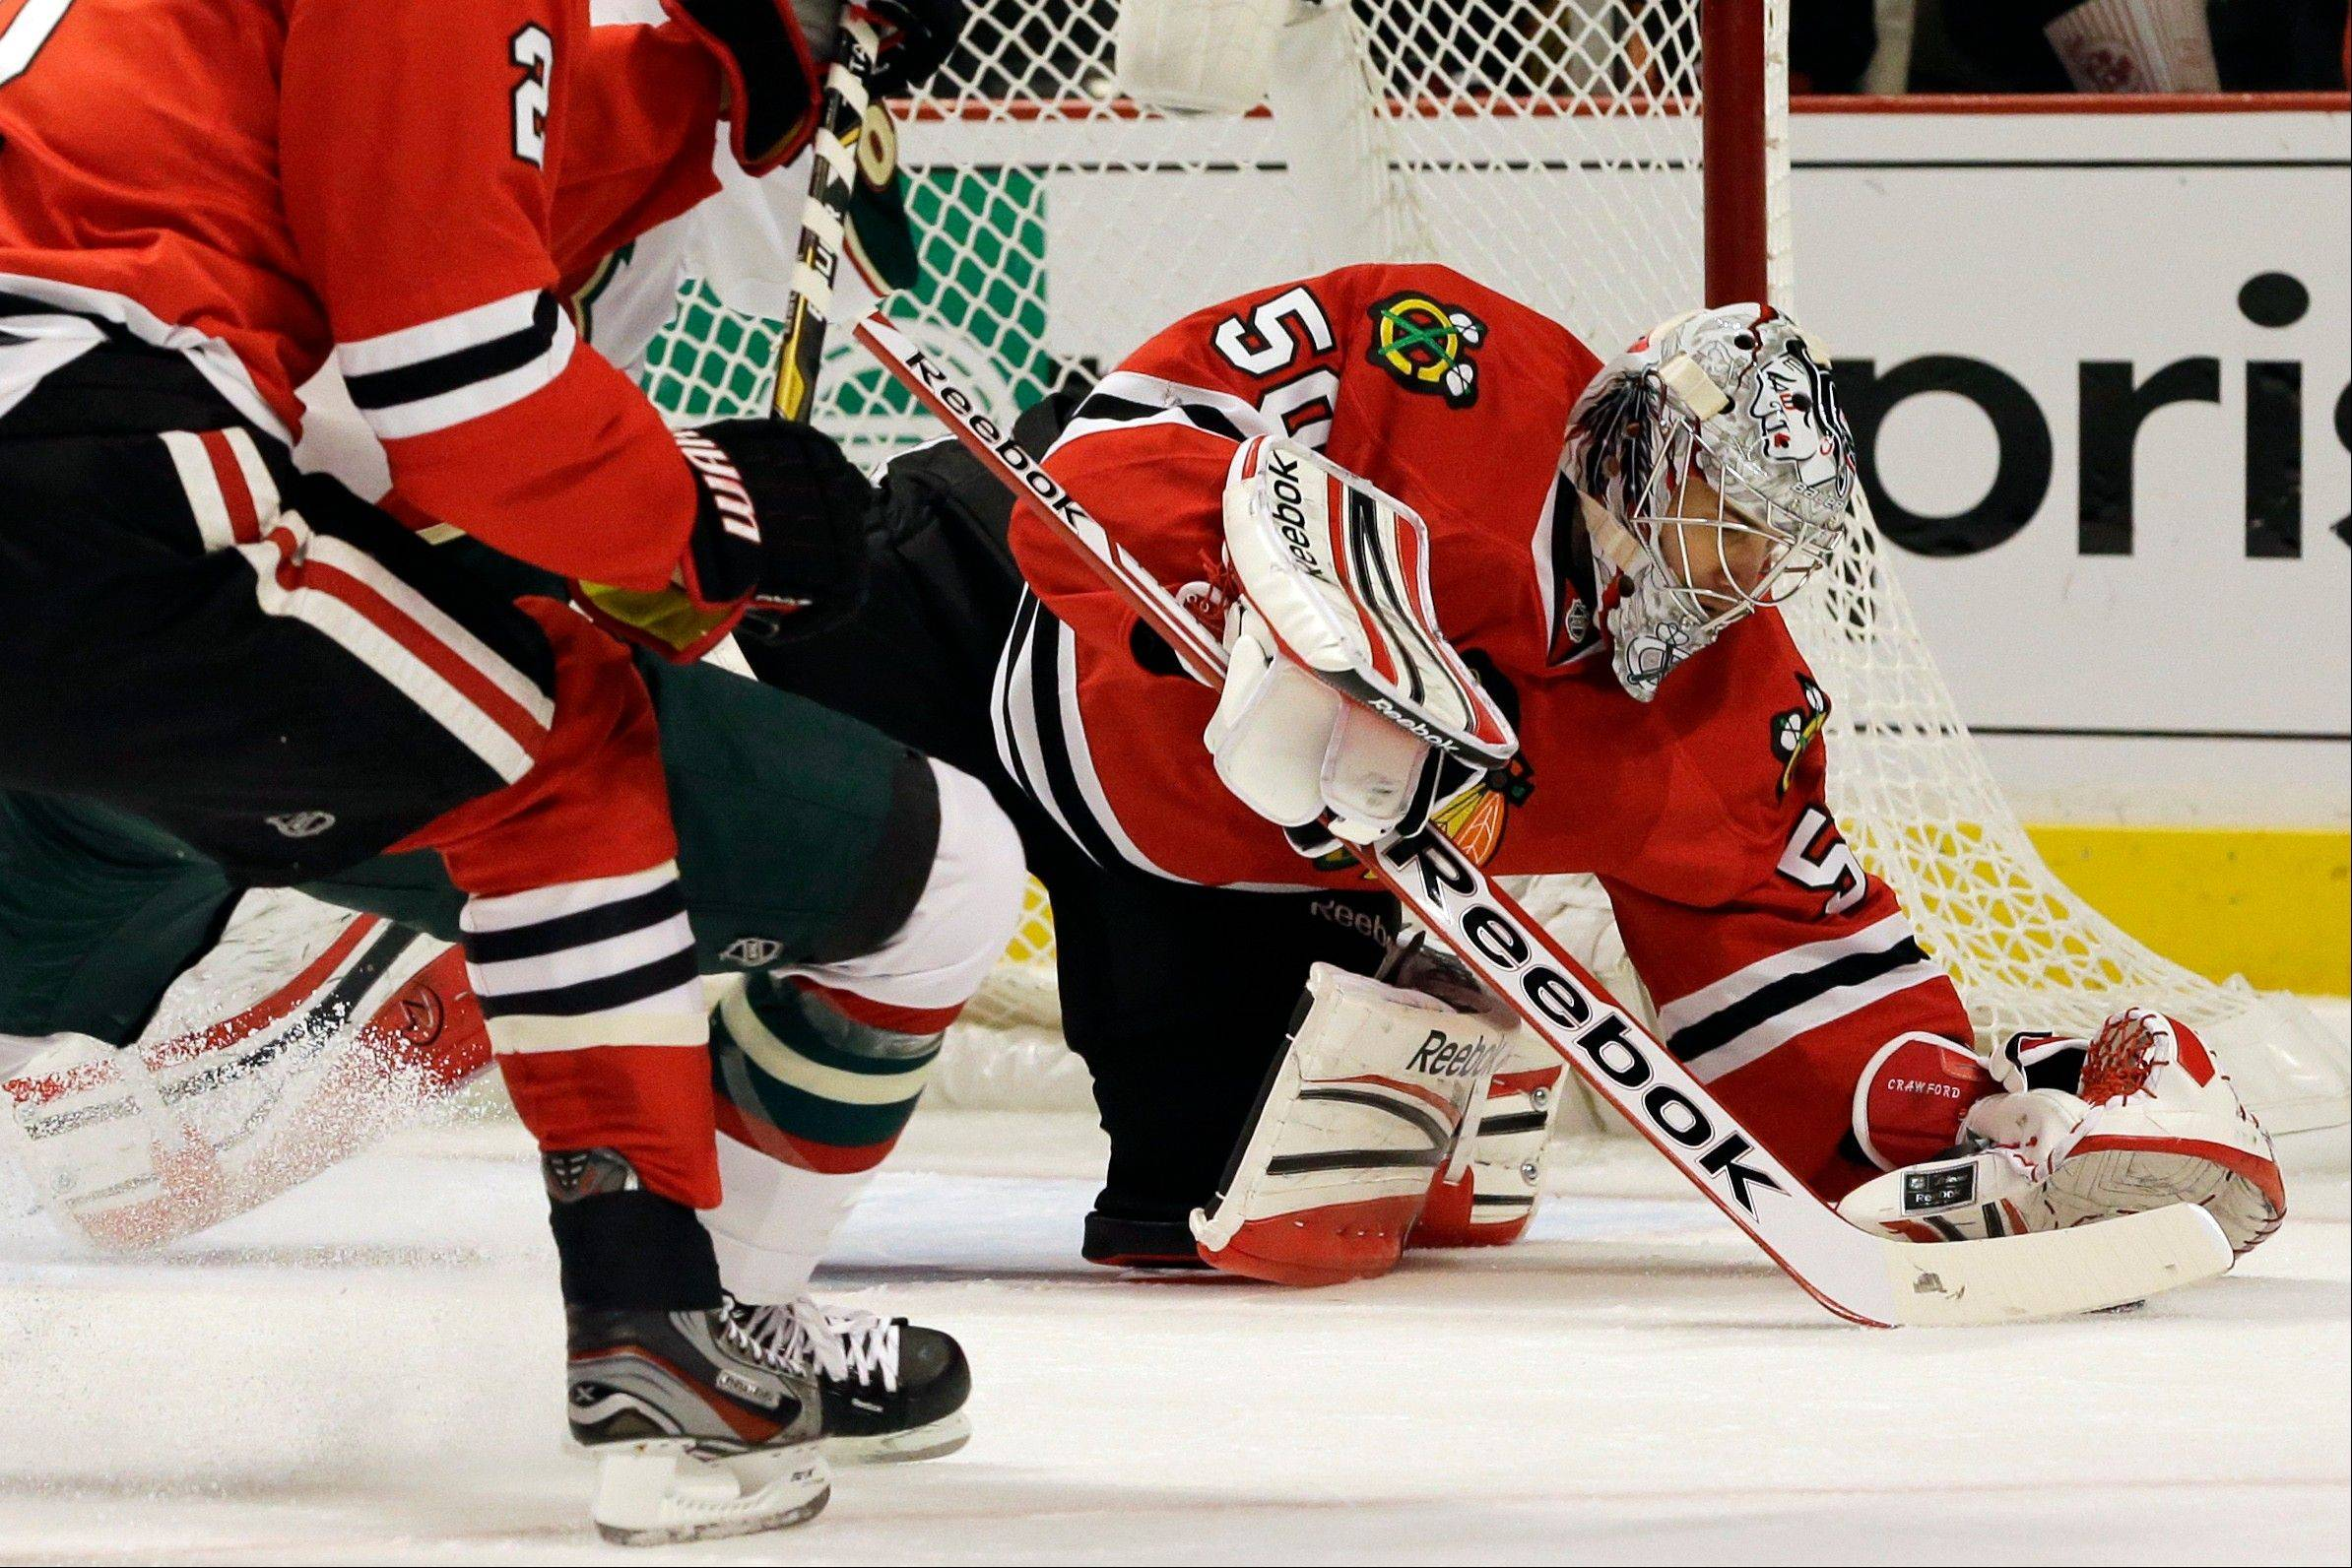 Chicago Blackhawks goalie Corey Crawford, right, saves a shot by Minnesota Wild's Charlie Coyle (not shown) during the first period of Game 2 of an NHL hockey Stanley Cup first-round playoff series in Chicago, Friday, May 3, 2013.